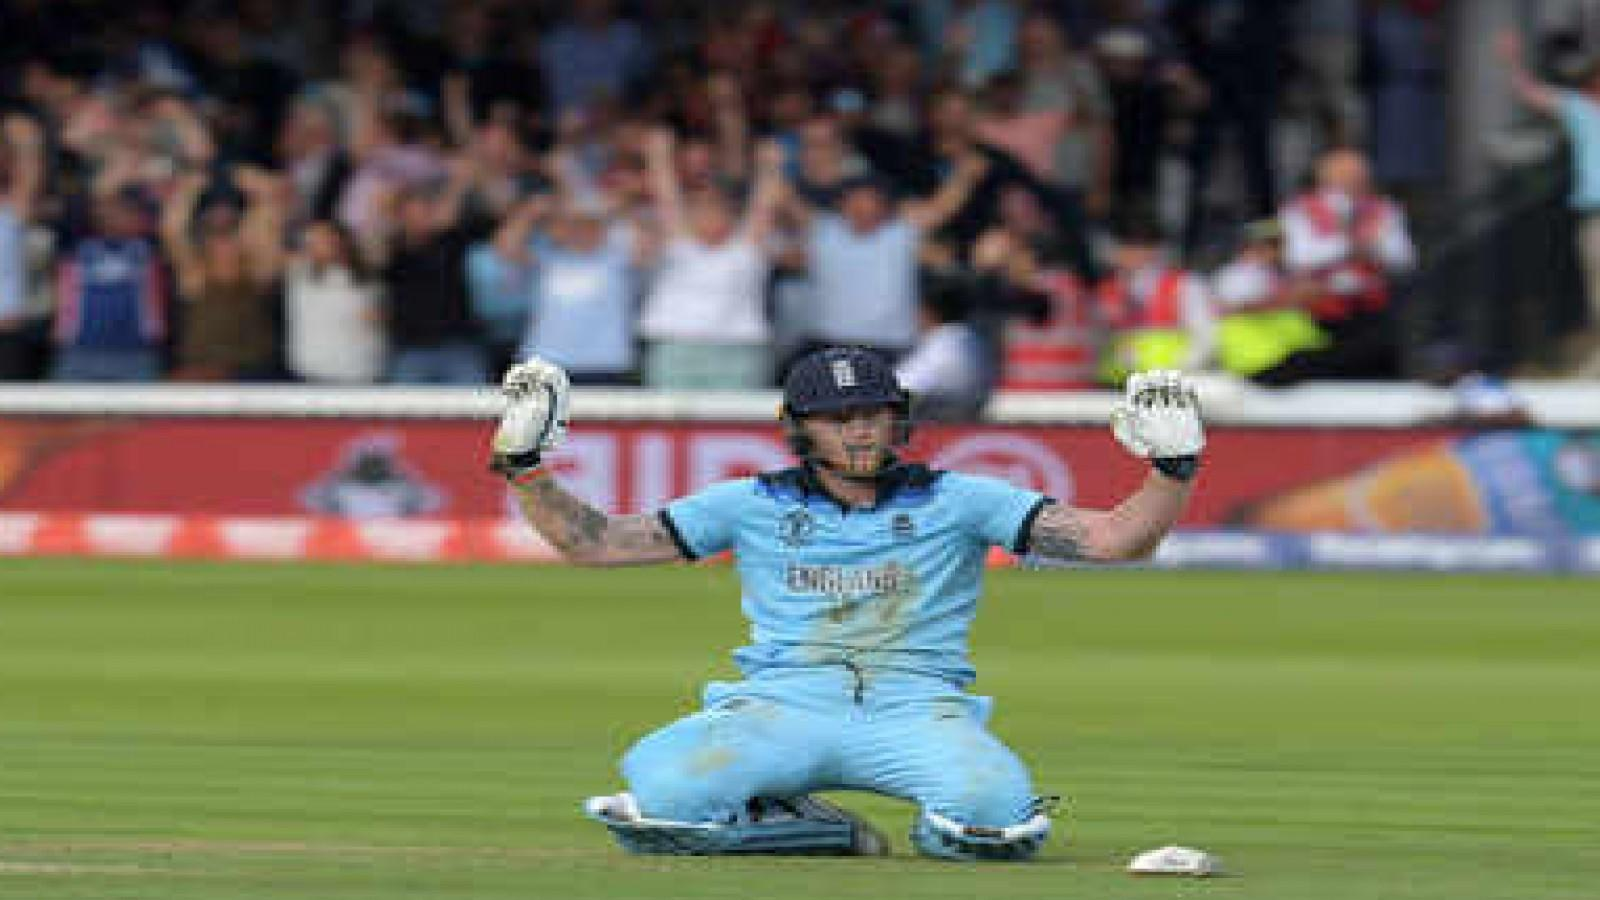 Ben Stokes asked umpire to not award England match changing four overthrows  in World Cup final, says James Anderson